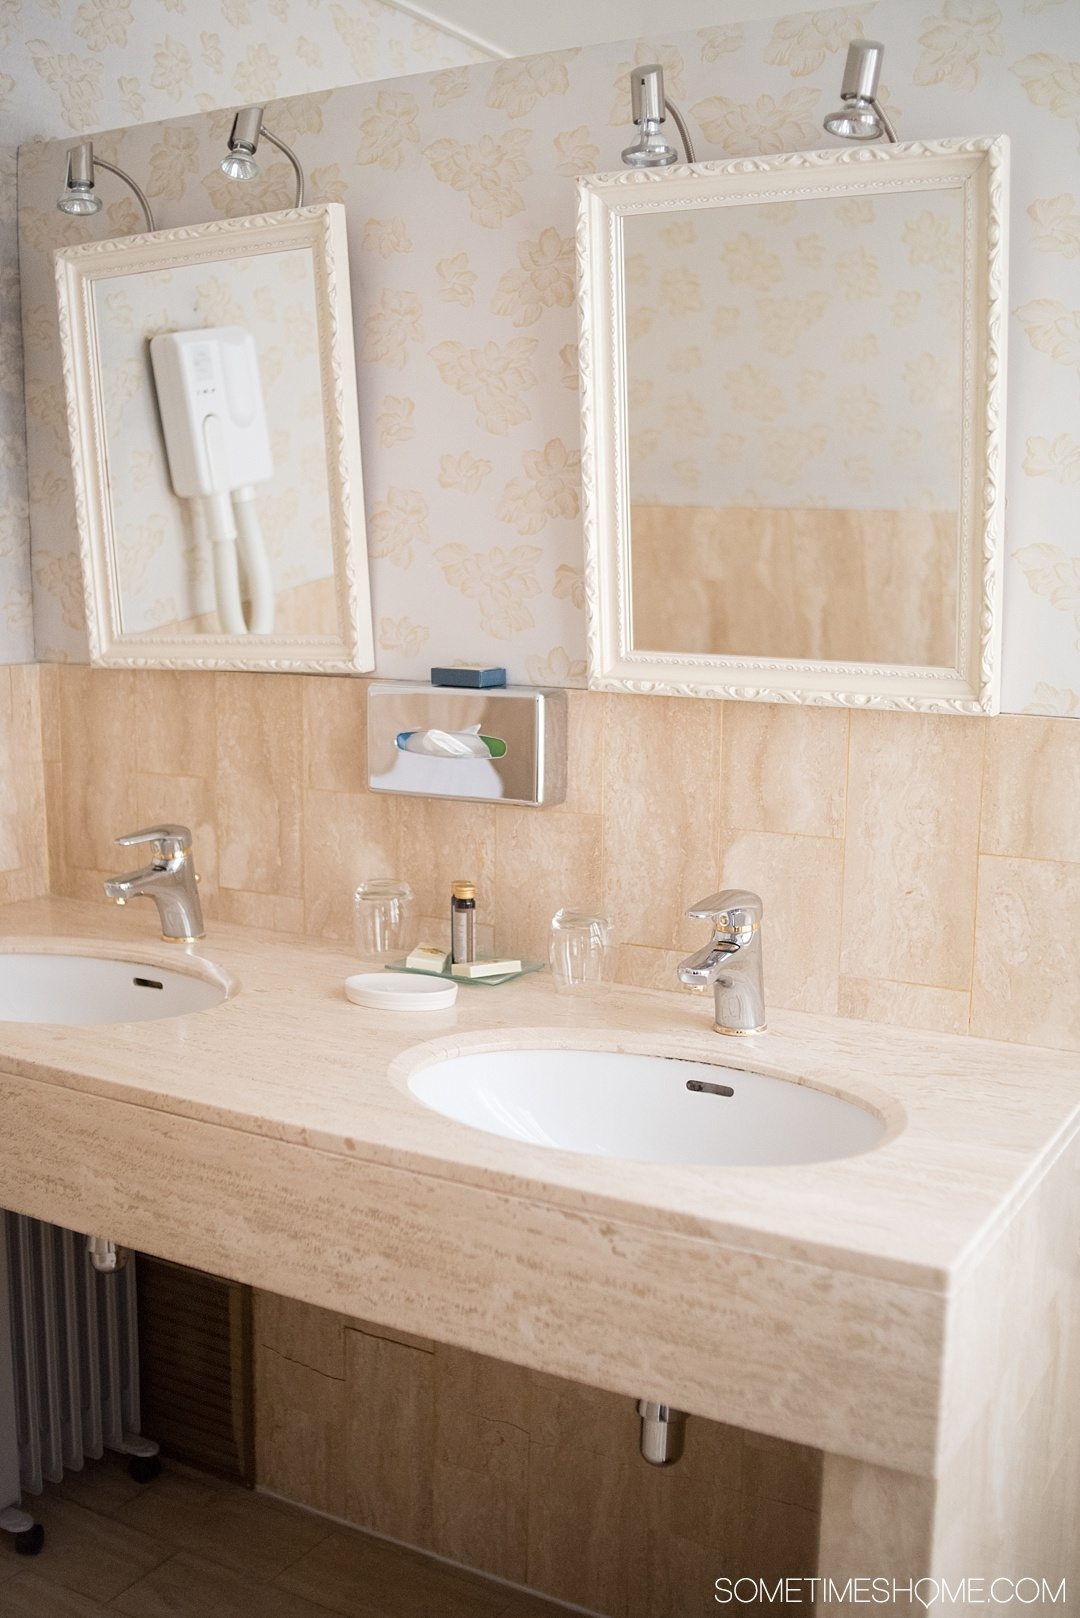 Paris hotel suite accommodation with 29 rooms at very affordable prices in the historic Le Marais district. Click through to the article for a complete review!